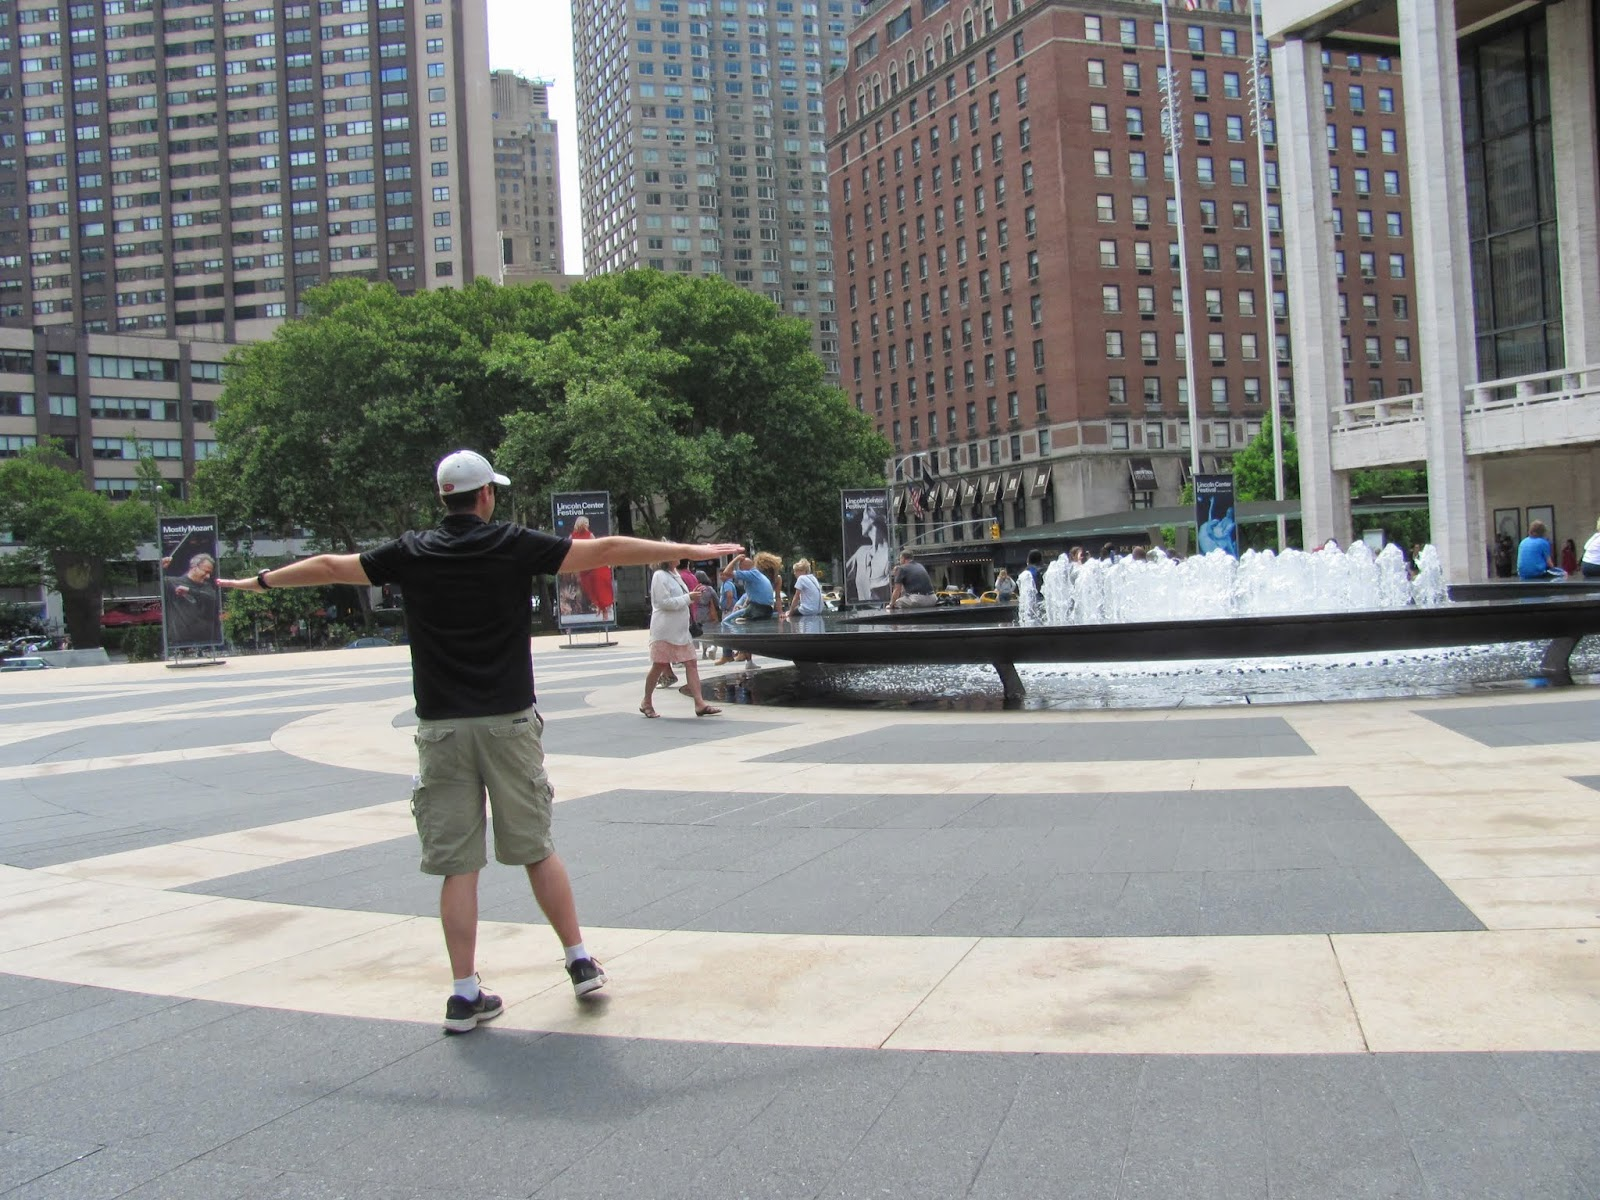 Cory twirling in Lincoln Center Plaza